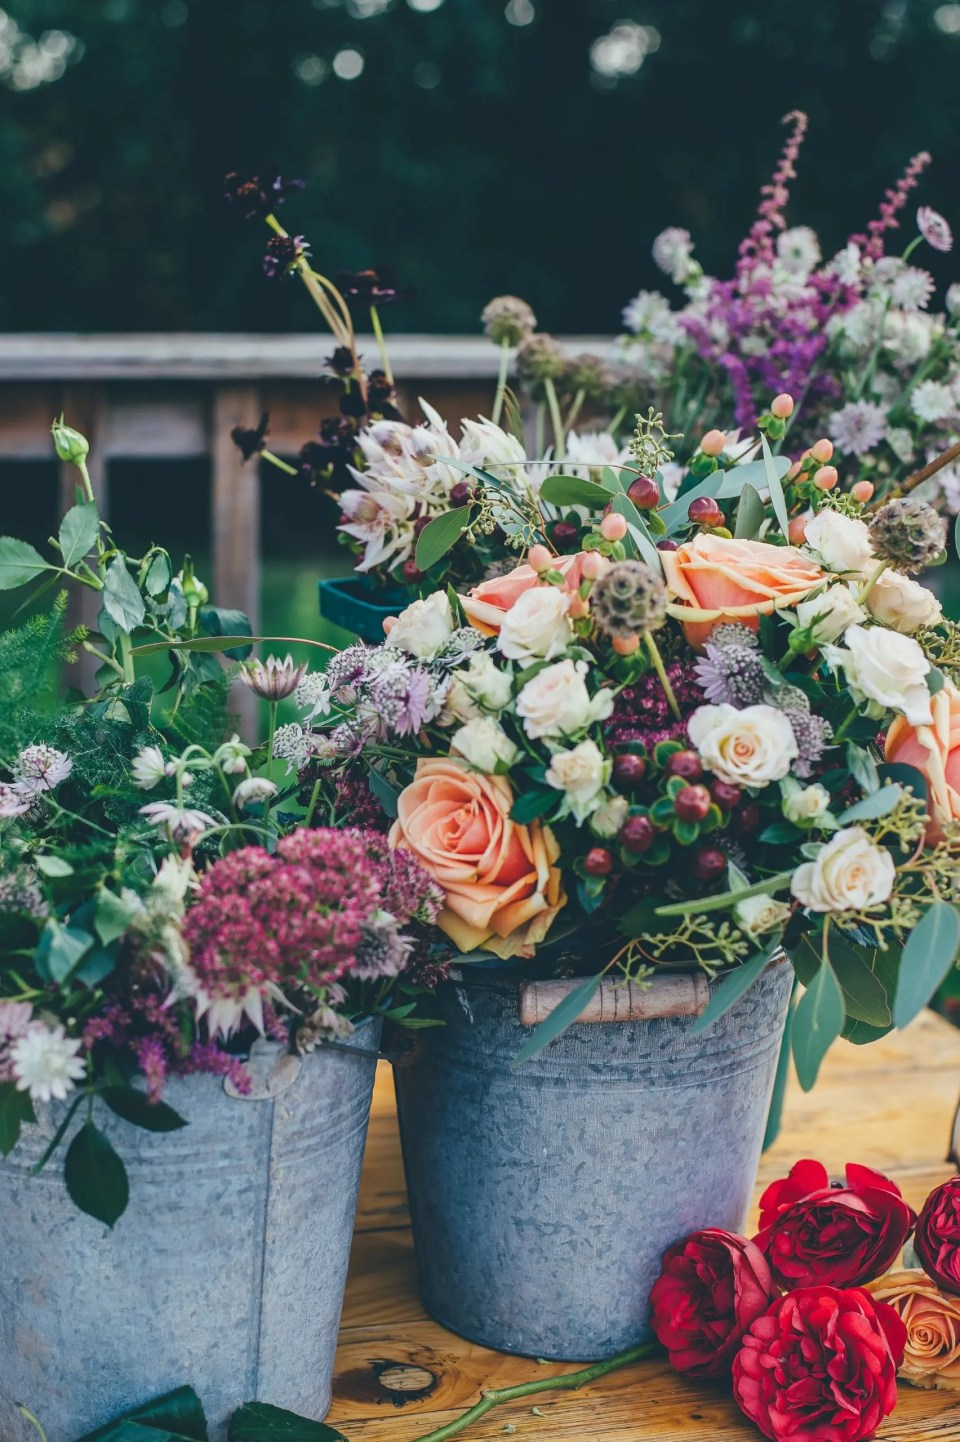 Support small wedding businesses by buying flowers from your florist.